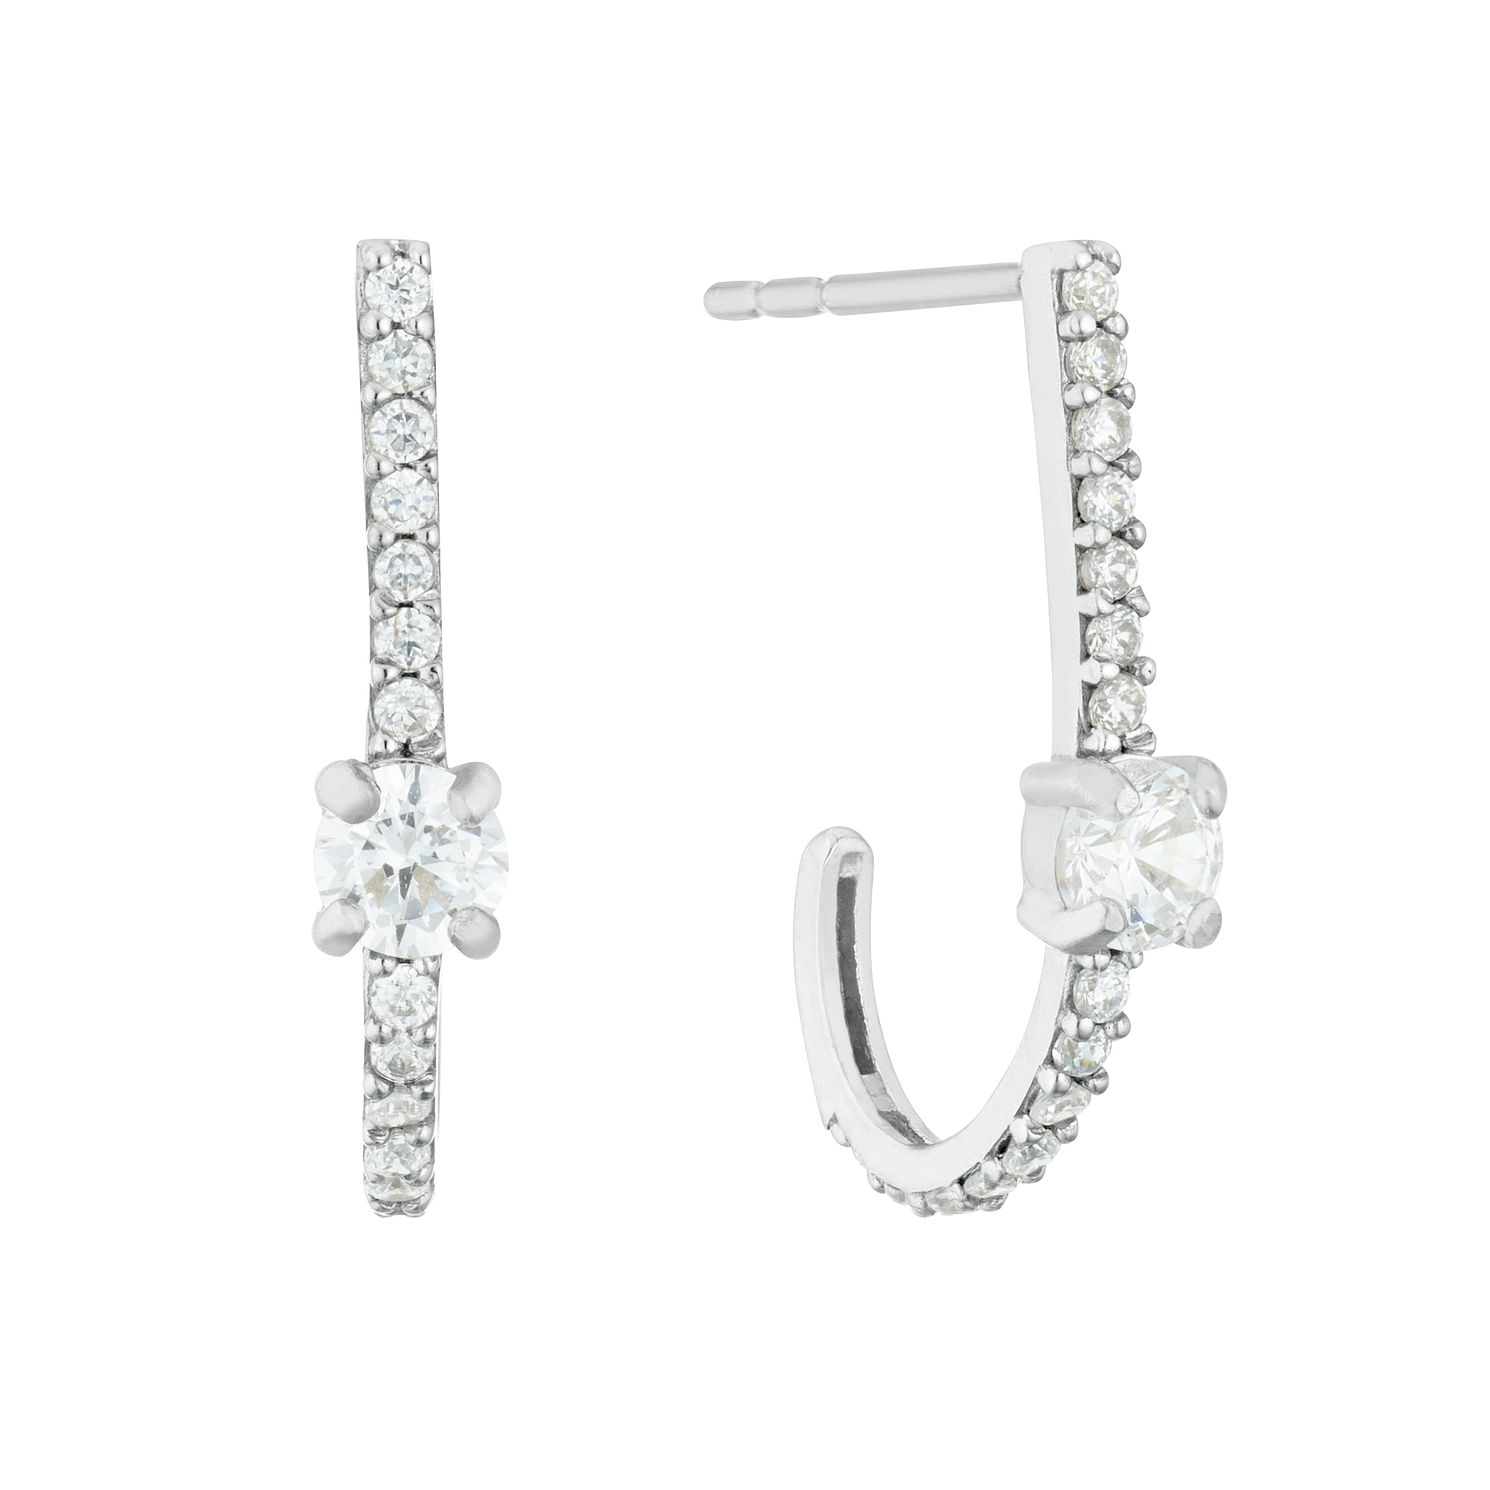 9ct White Gold Cubic Zirconia Station Hoop Earrings - Product number 3139972